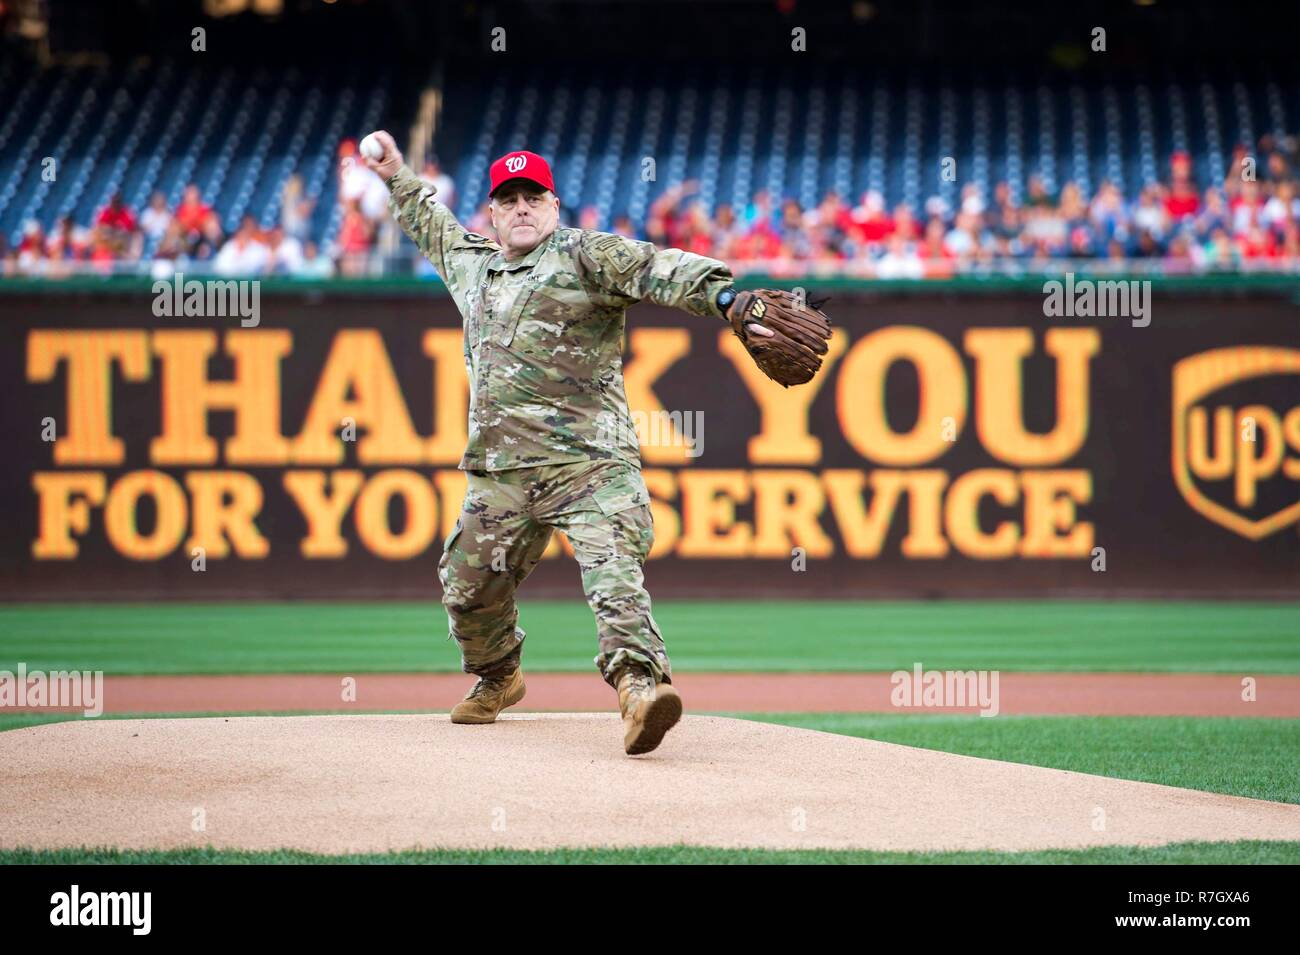 U.S. Army Chief of Staff Gen. Mark Milley throws out the first pitch for the Washington Nationals baseball game during Army Day at Nationals Park June 28, 2016 in Washington, DC. Milley was chosen by President Donald Trump on December 8, 2018 to be the next Chairman of the Joint Chiefs. Stock Photo